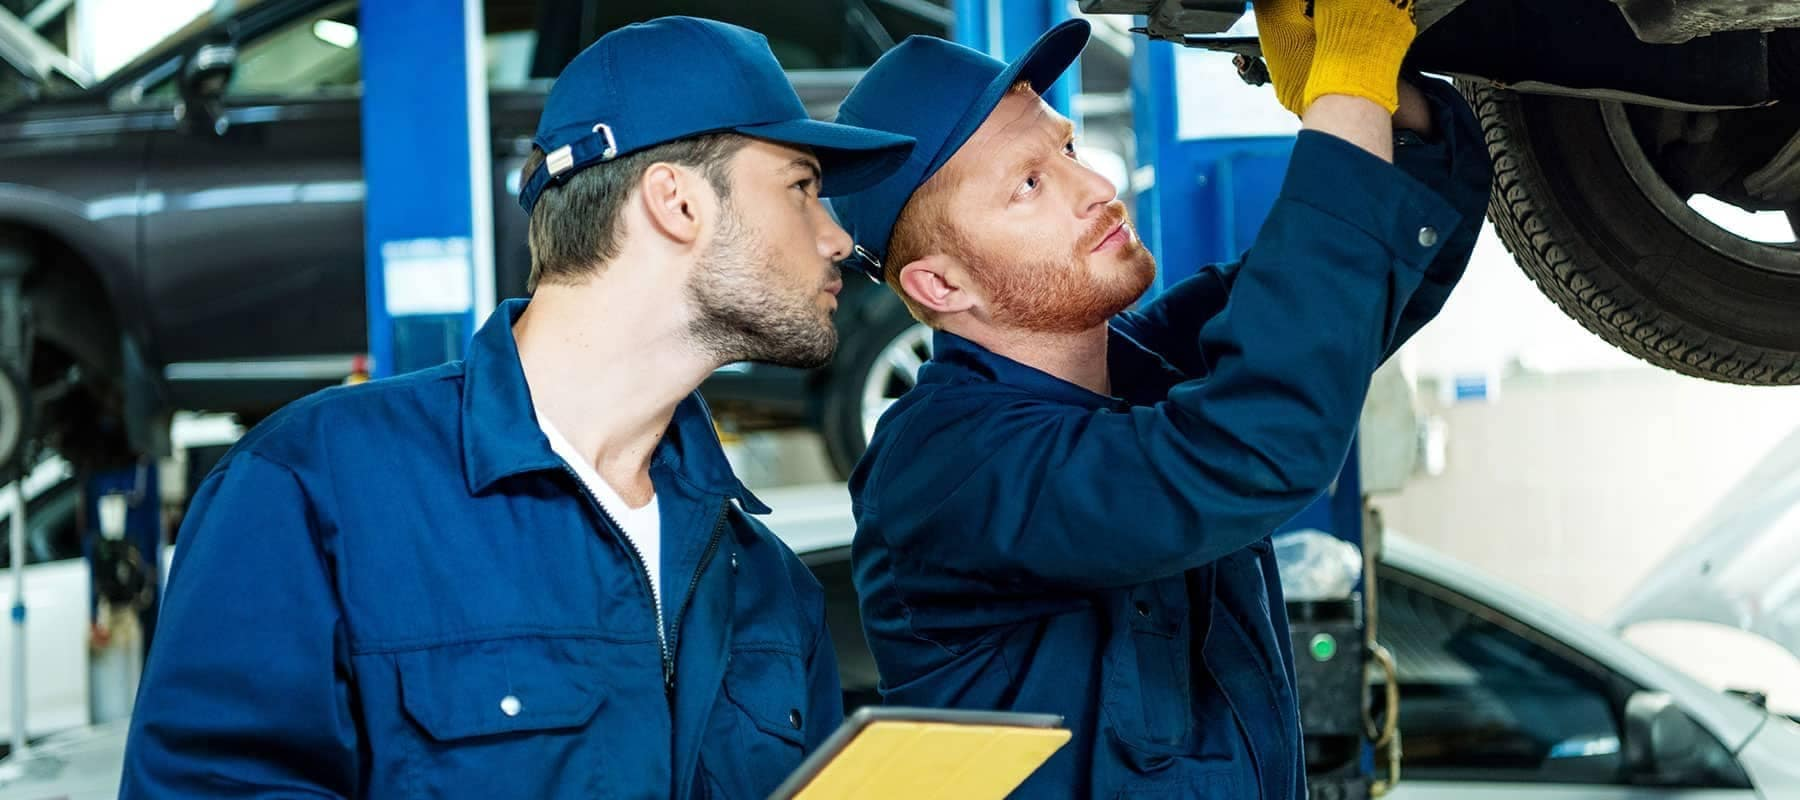 Two-Mechanics make repairs to undercarriage of vehicle